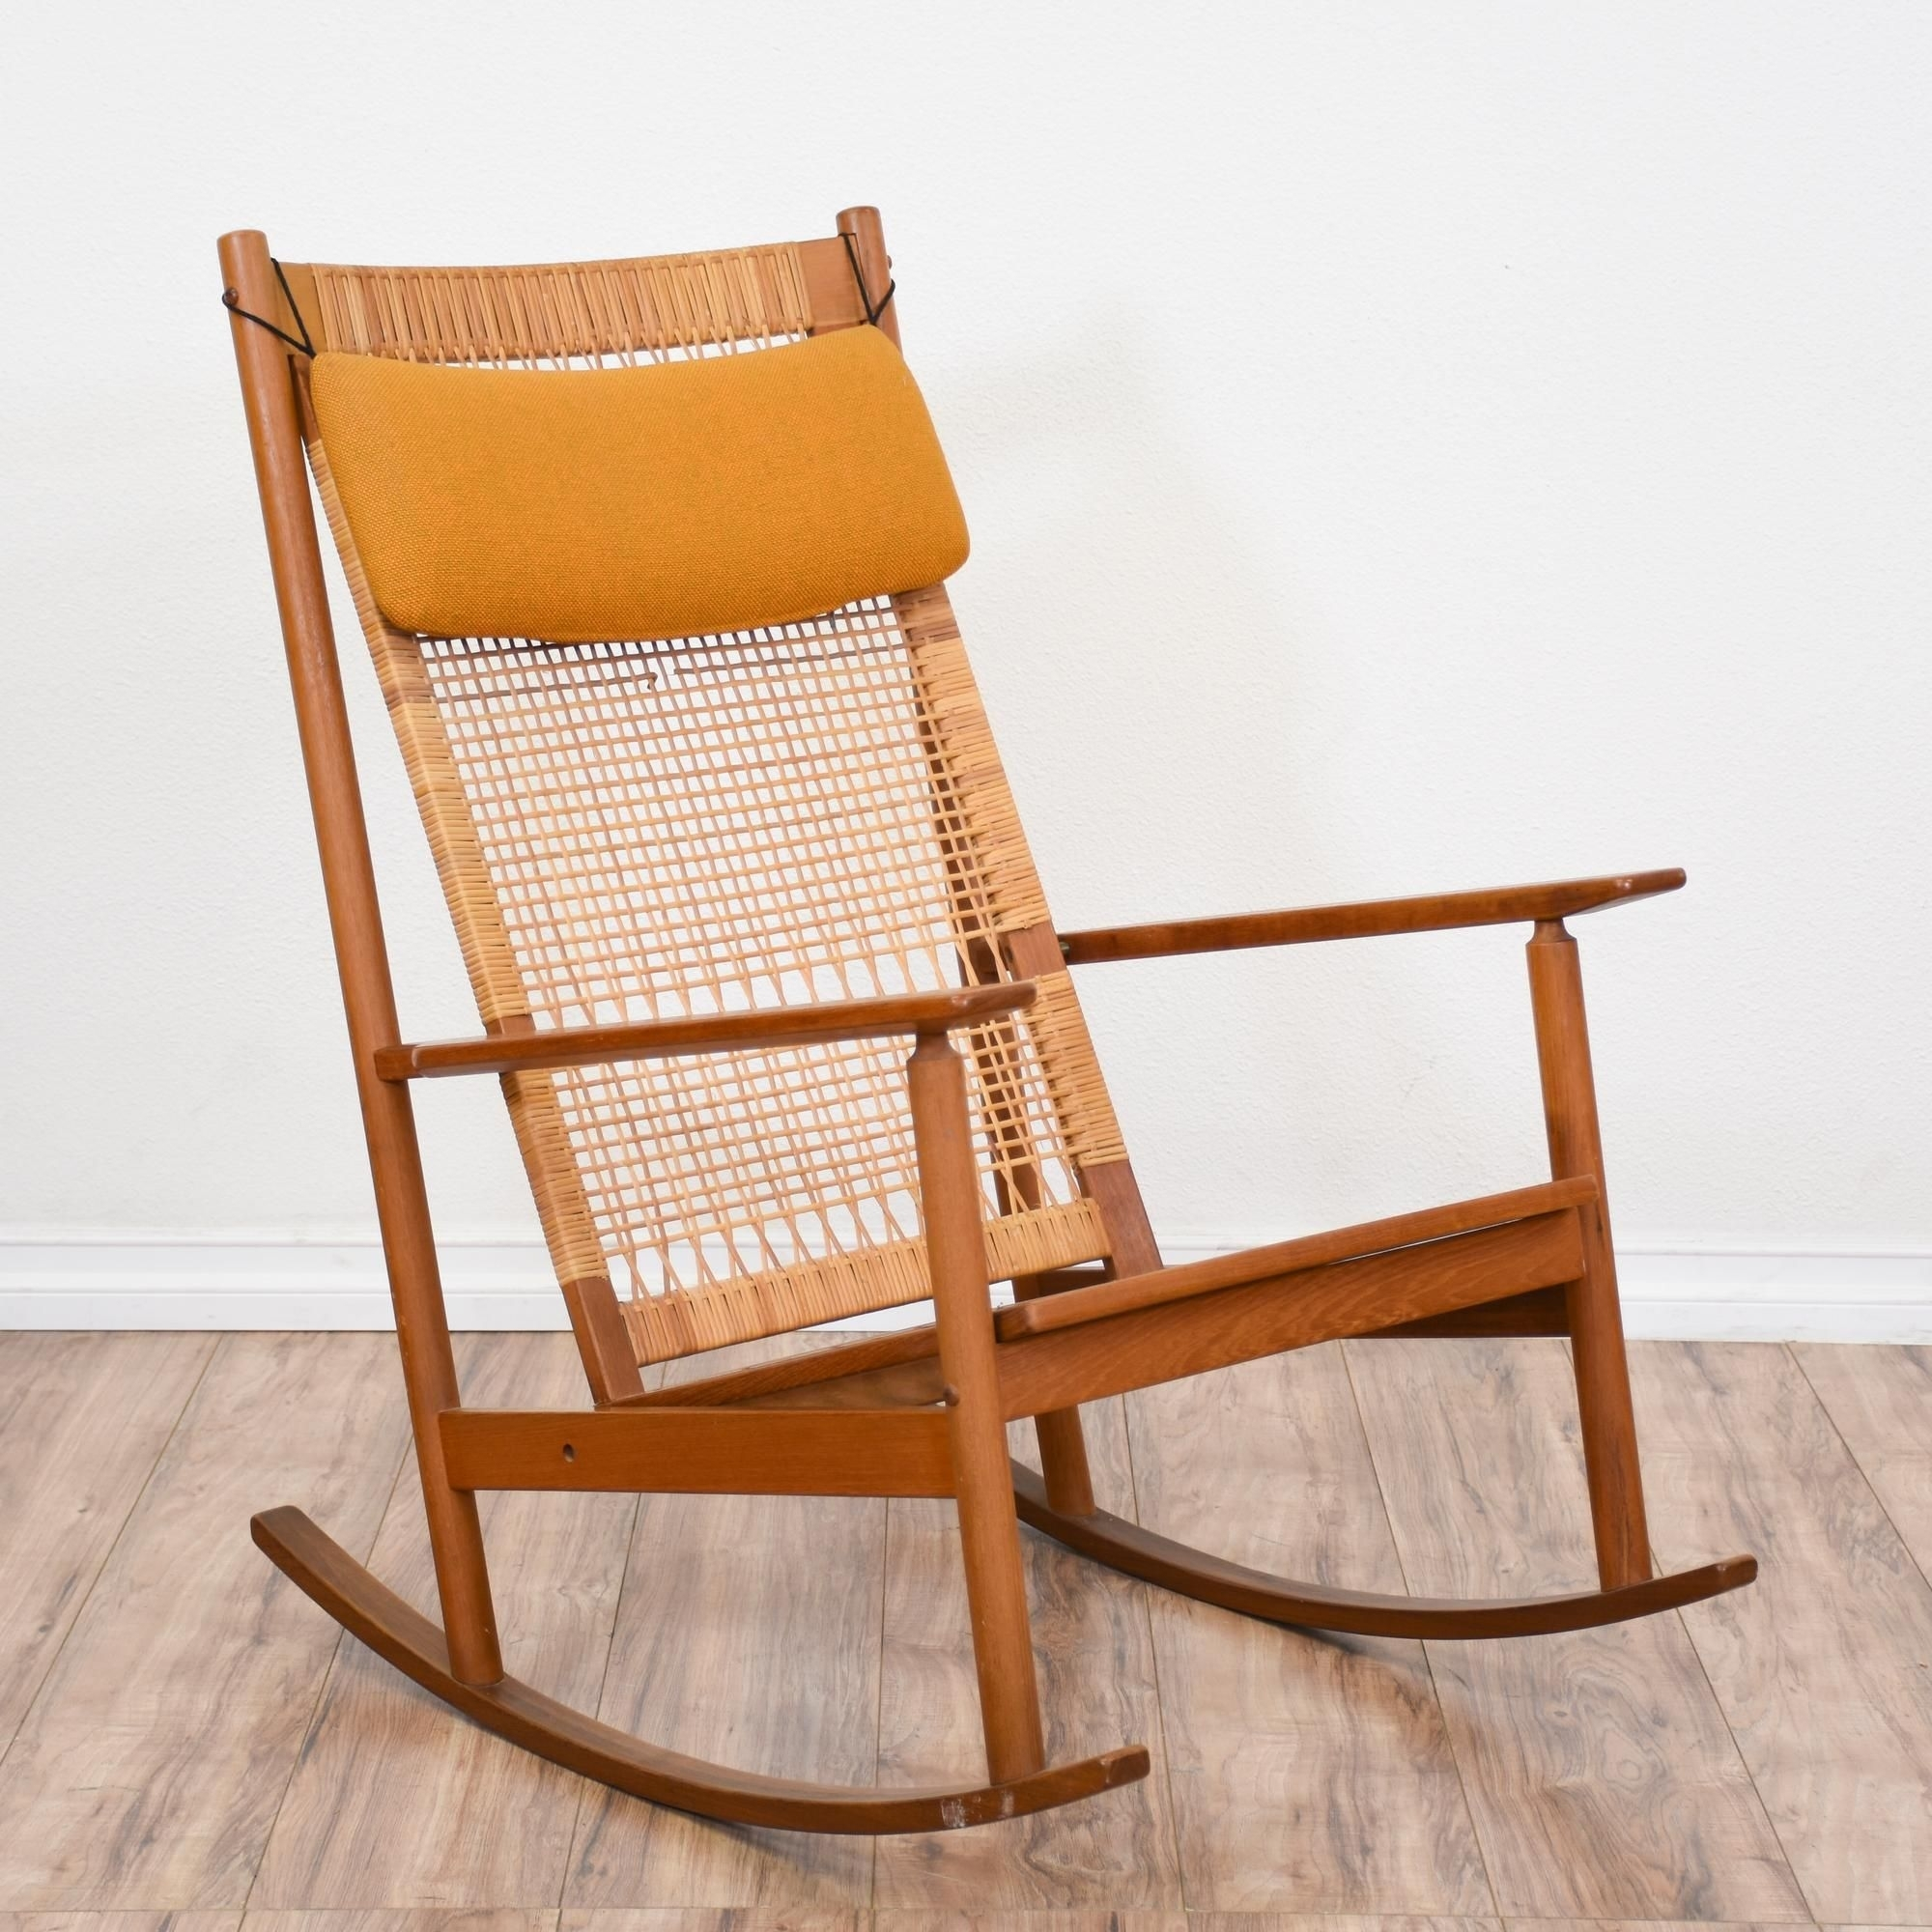 This Mid Century Modern Rocking Chair Featured Solid Wood Yellow Pertaining To Yellow Outdoor Rocking Chairs (#15 of 15)